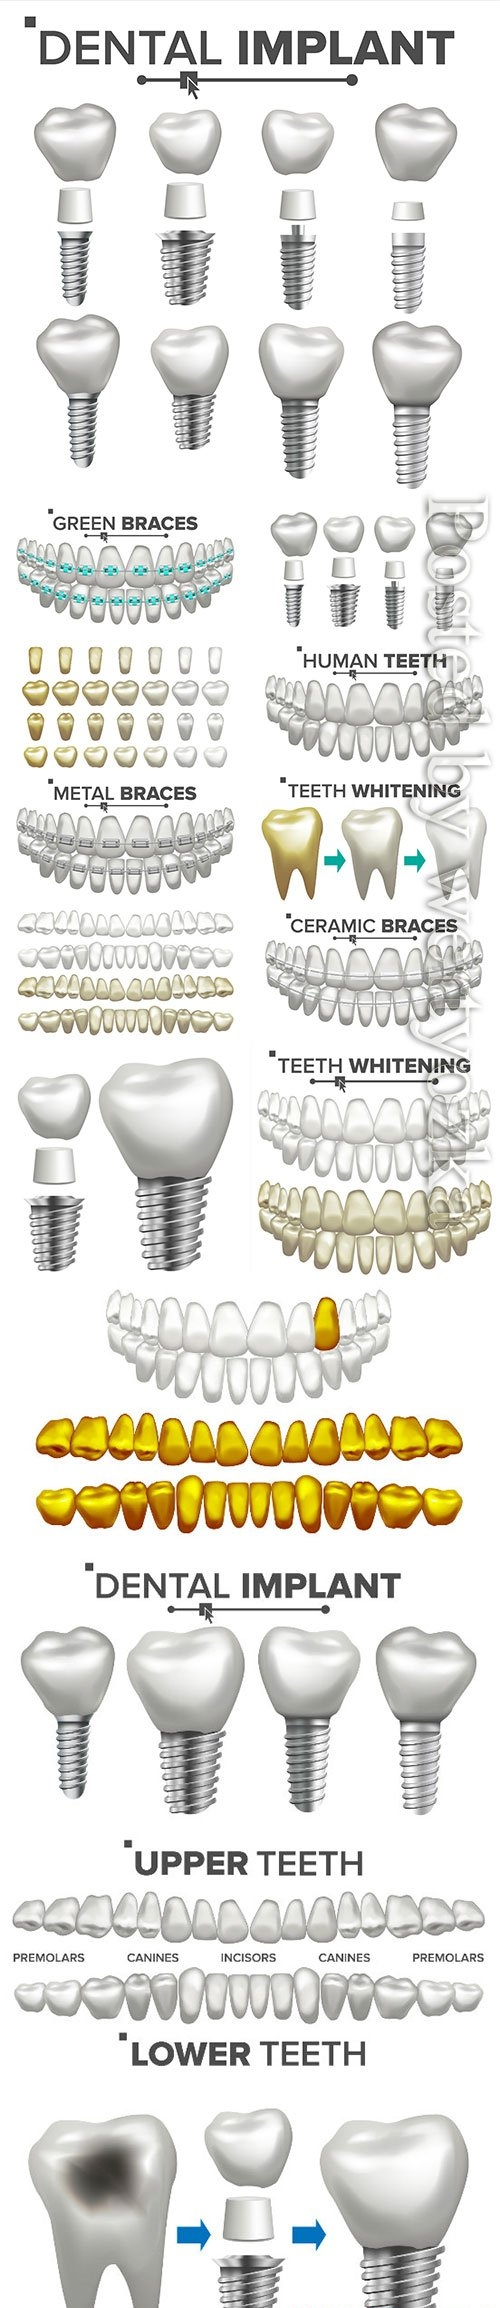 Dental implant illustration vector set